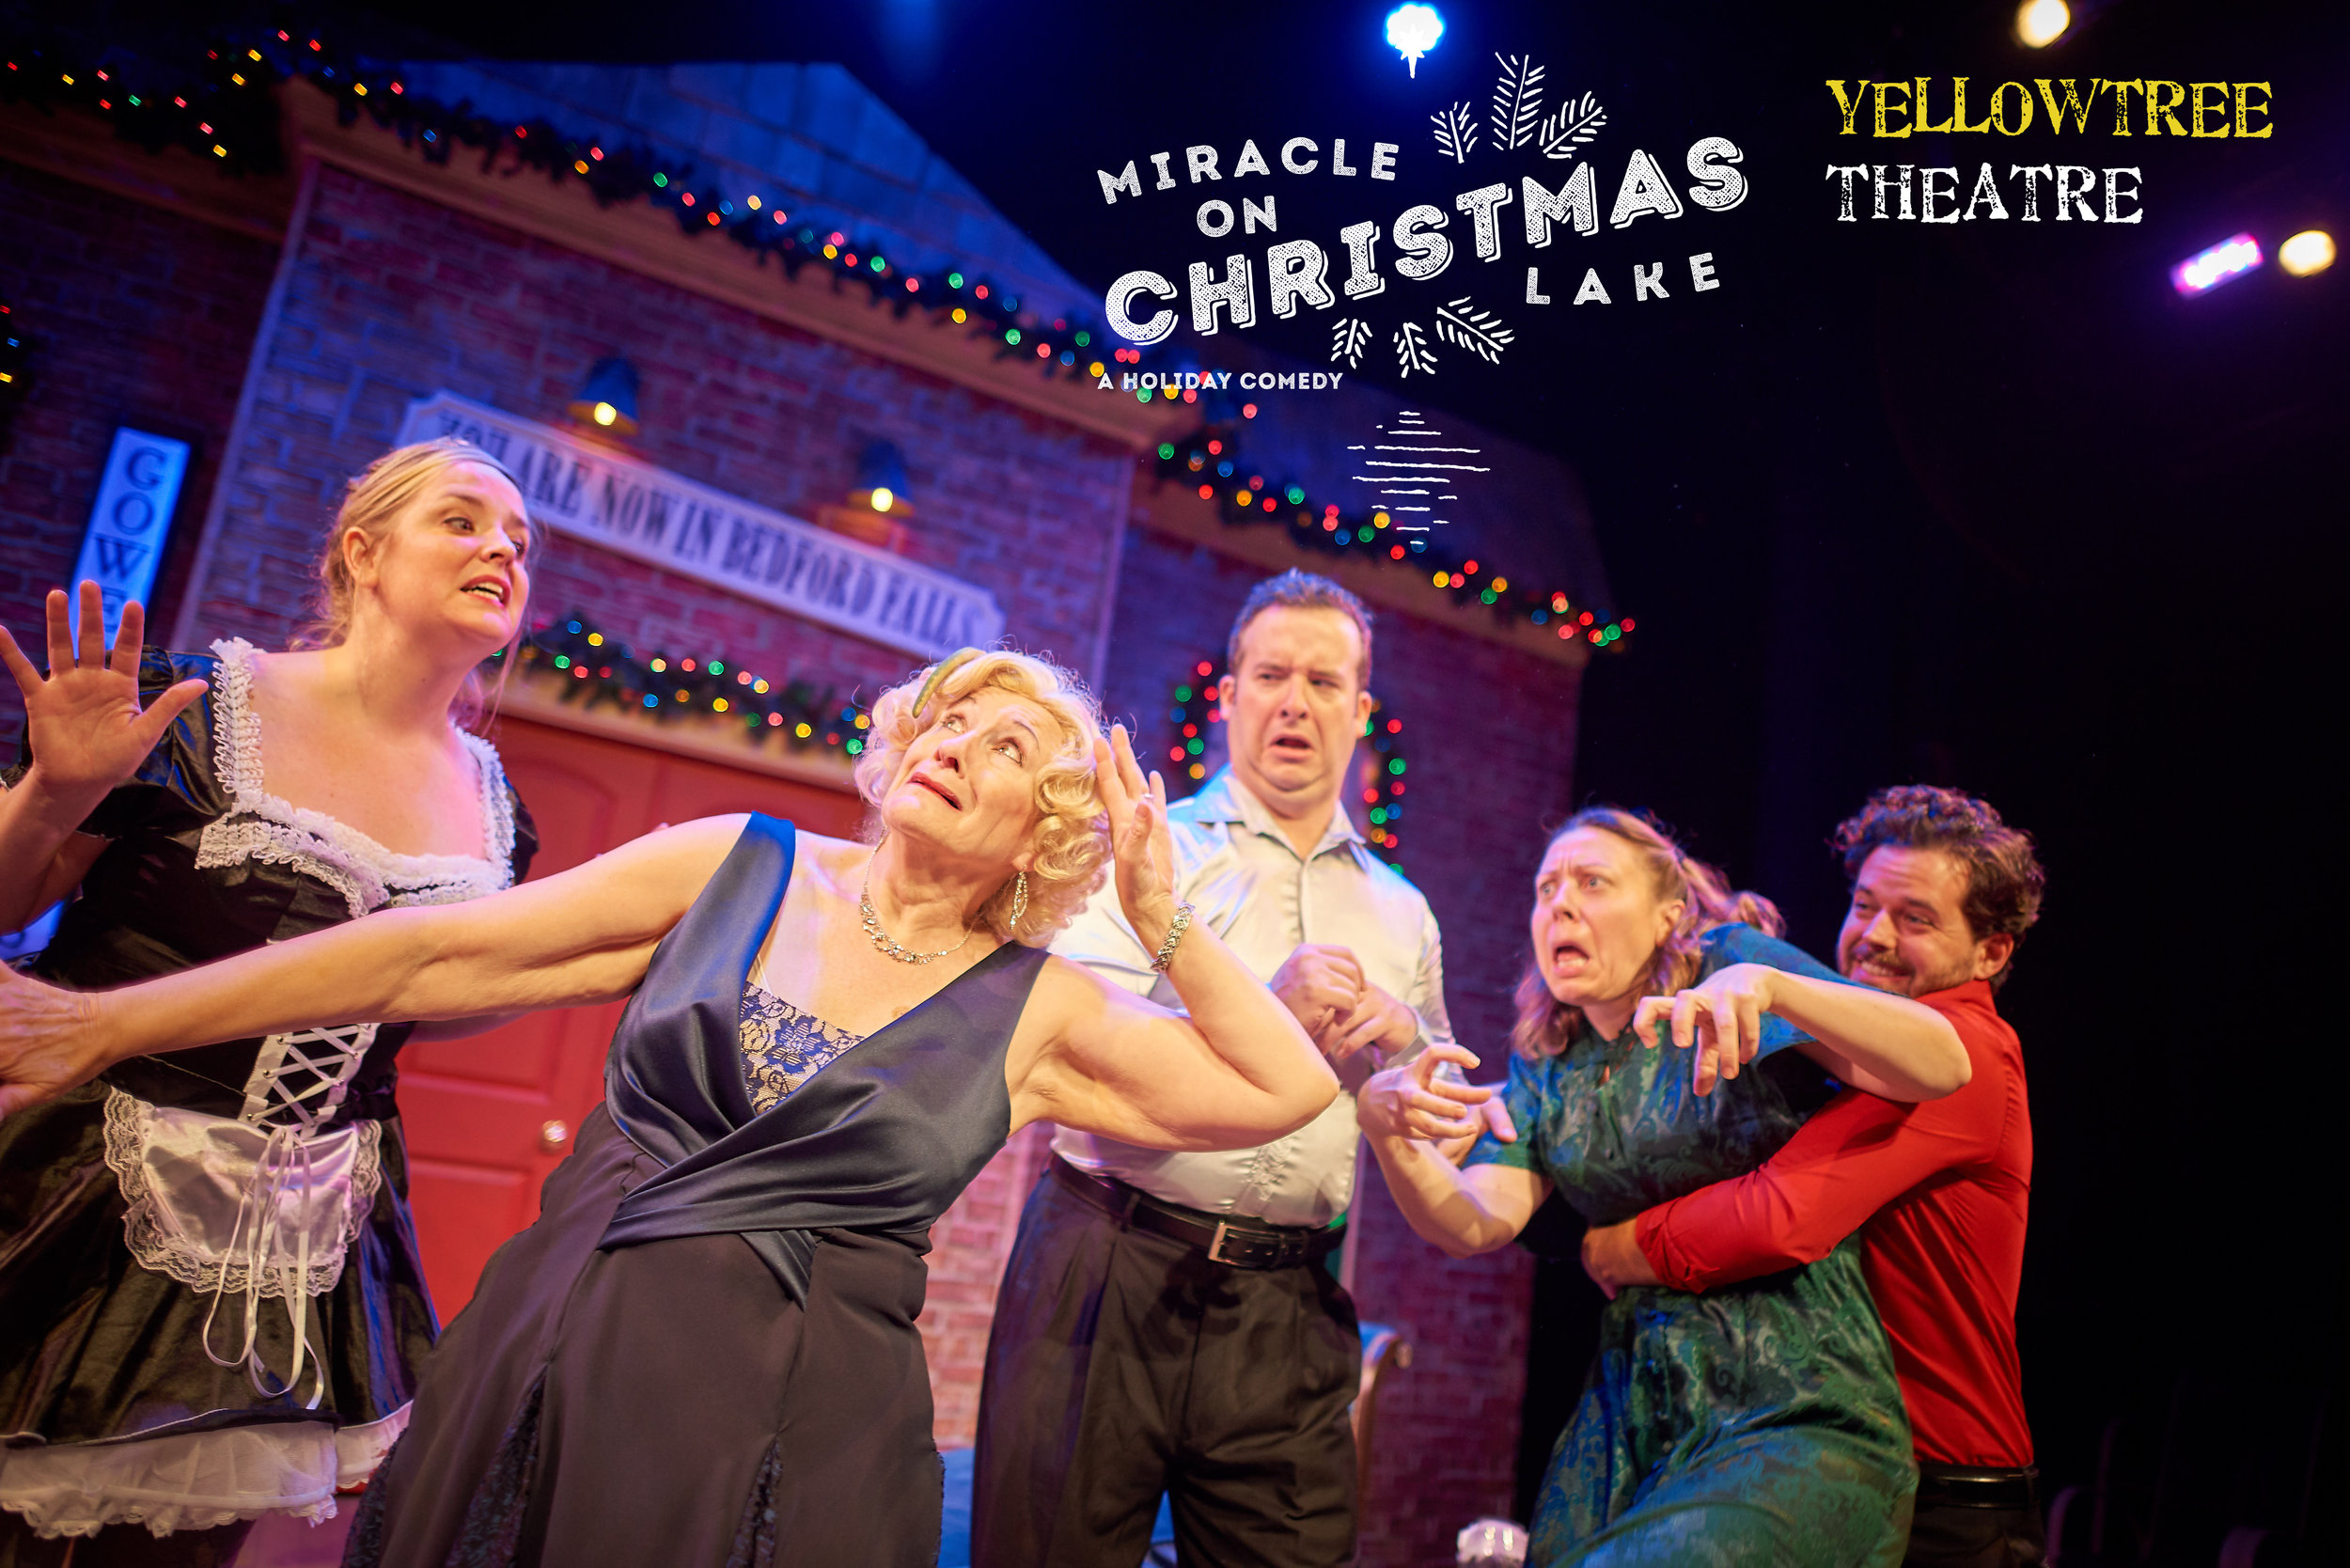 Yellow Tree Theatre-Christmas Miracle-Osseo-_D812855-Yellow Tree Theatre-Christmas Miracle-Minneapolis Event Photography-www.JCoxPhotography.com-Nov 06 2018-Minneapolis event Photography with logo.jpg